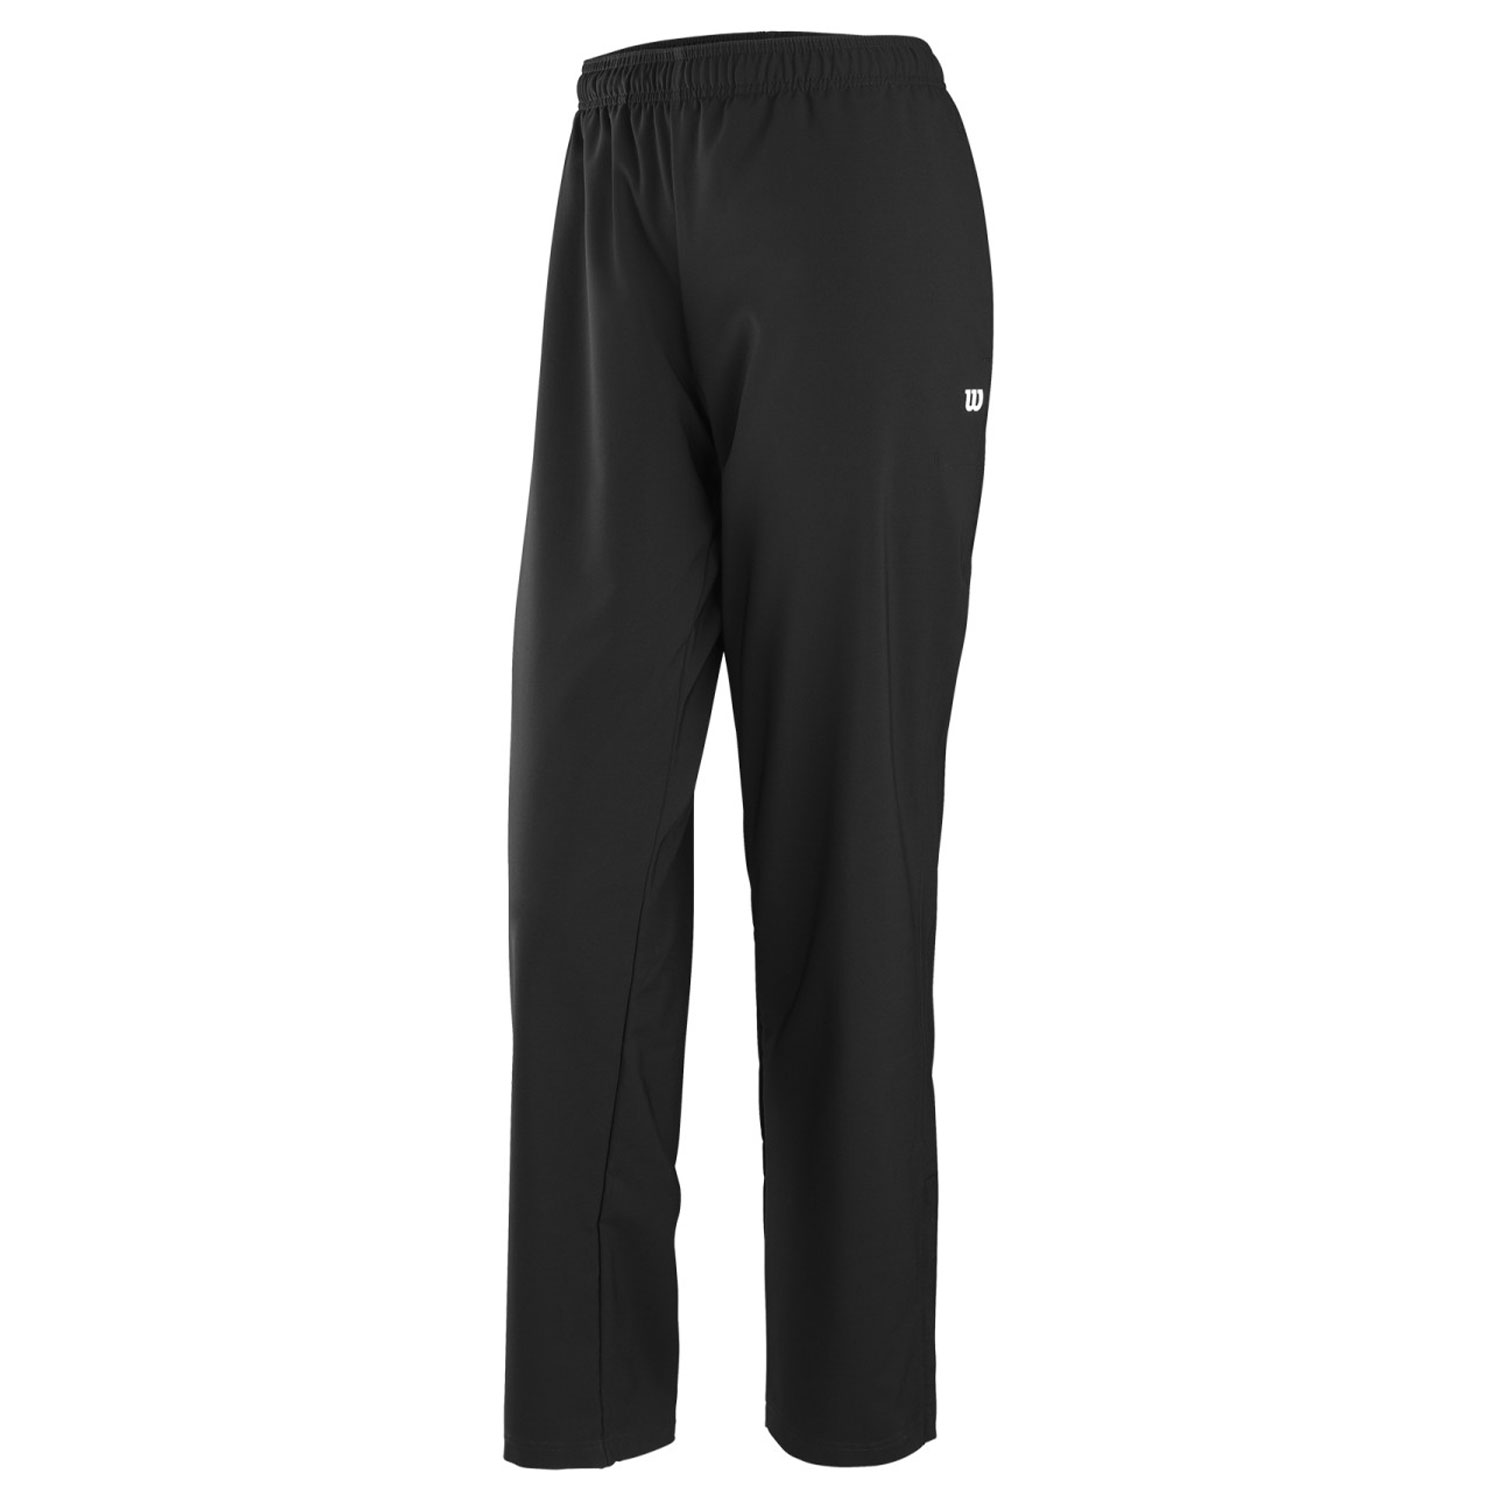 Wilson Team Woven Pants - Black